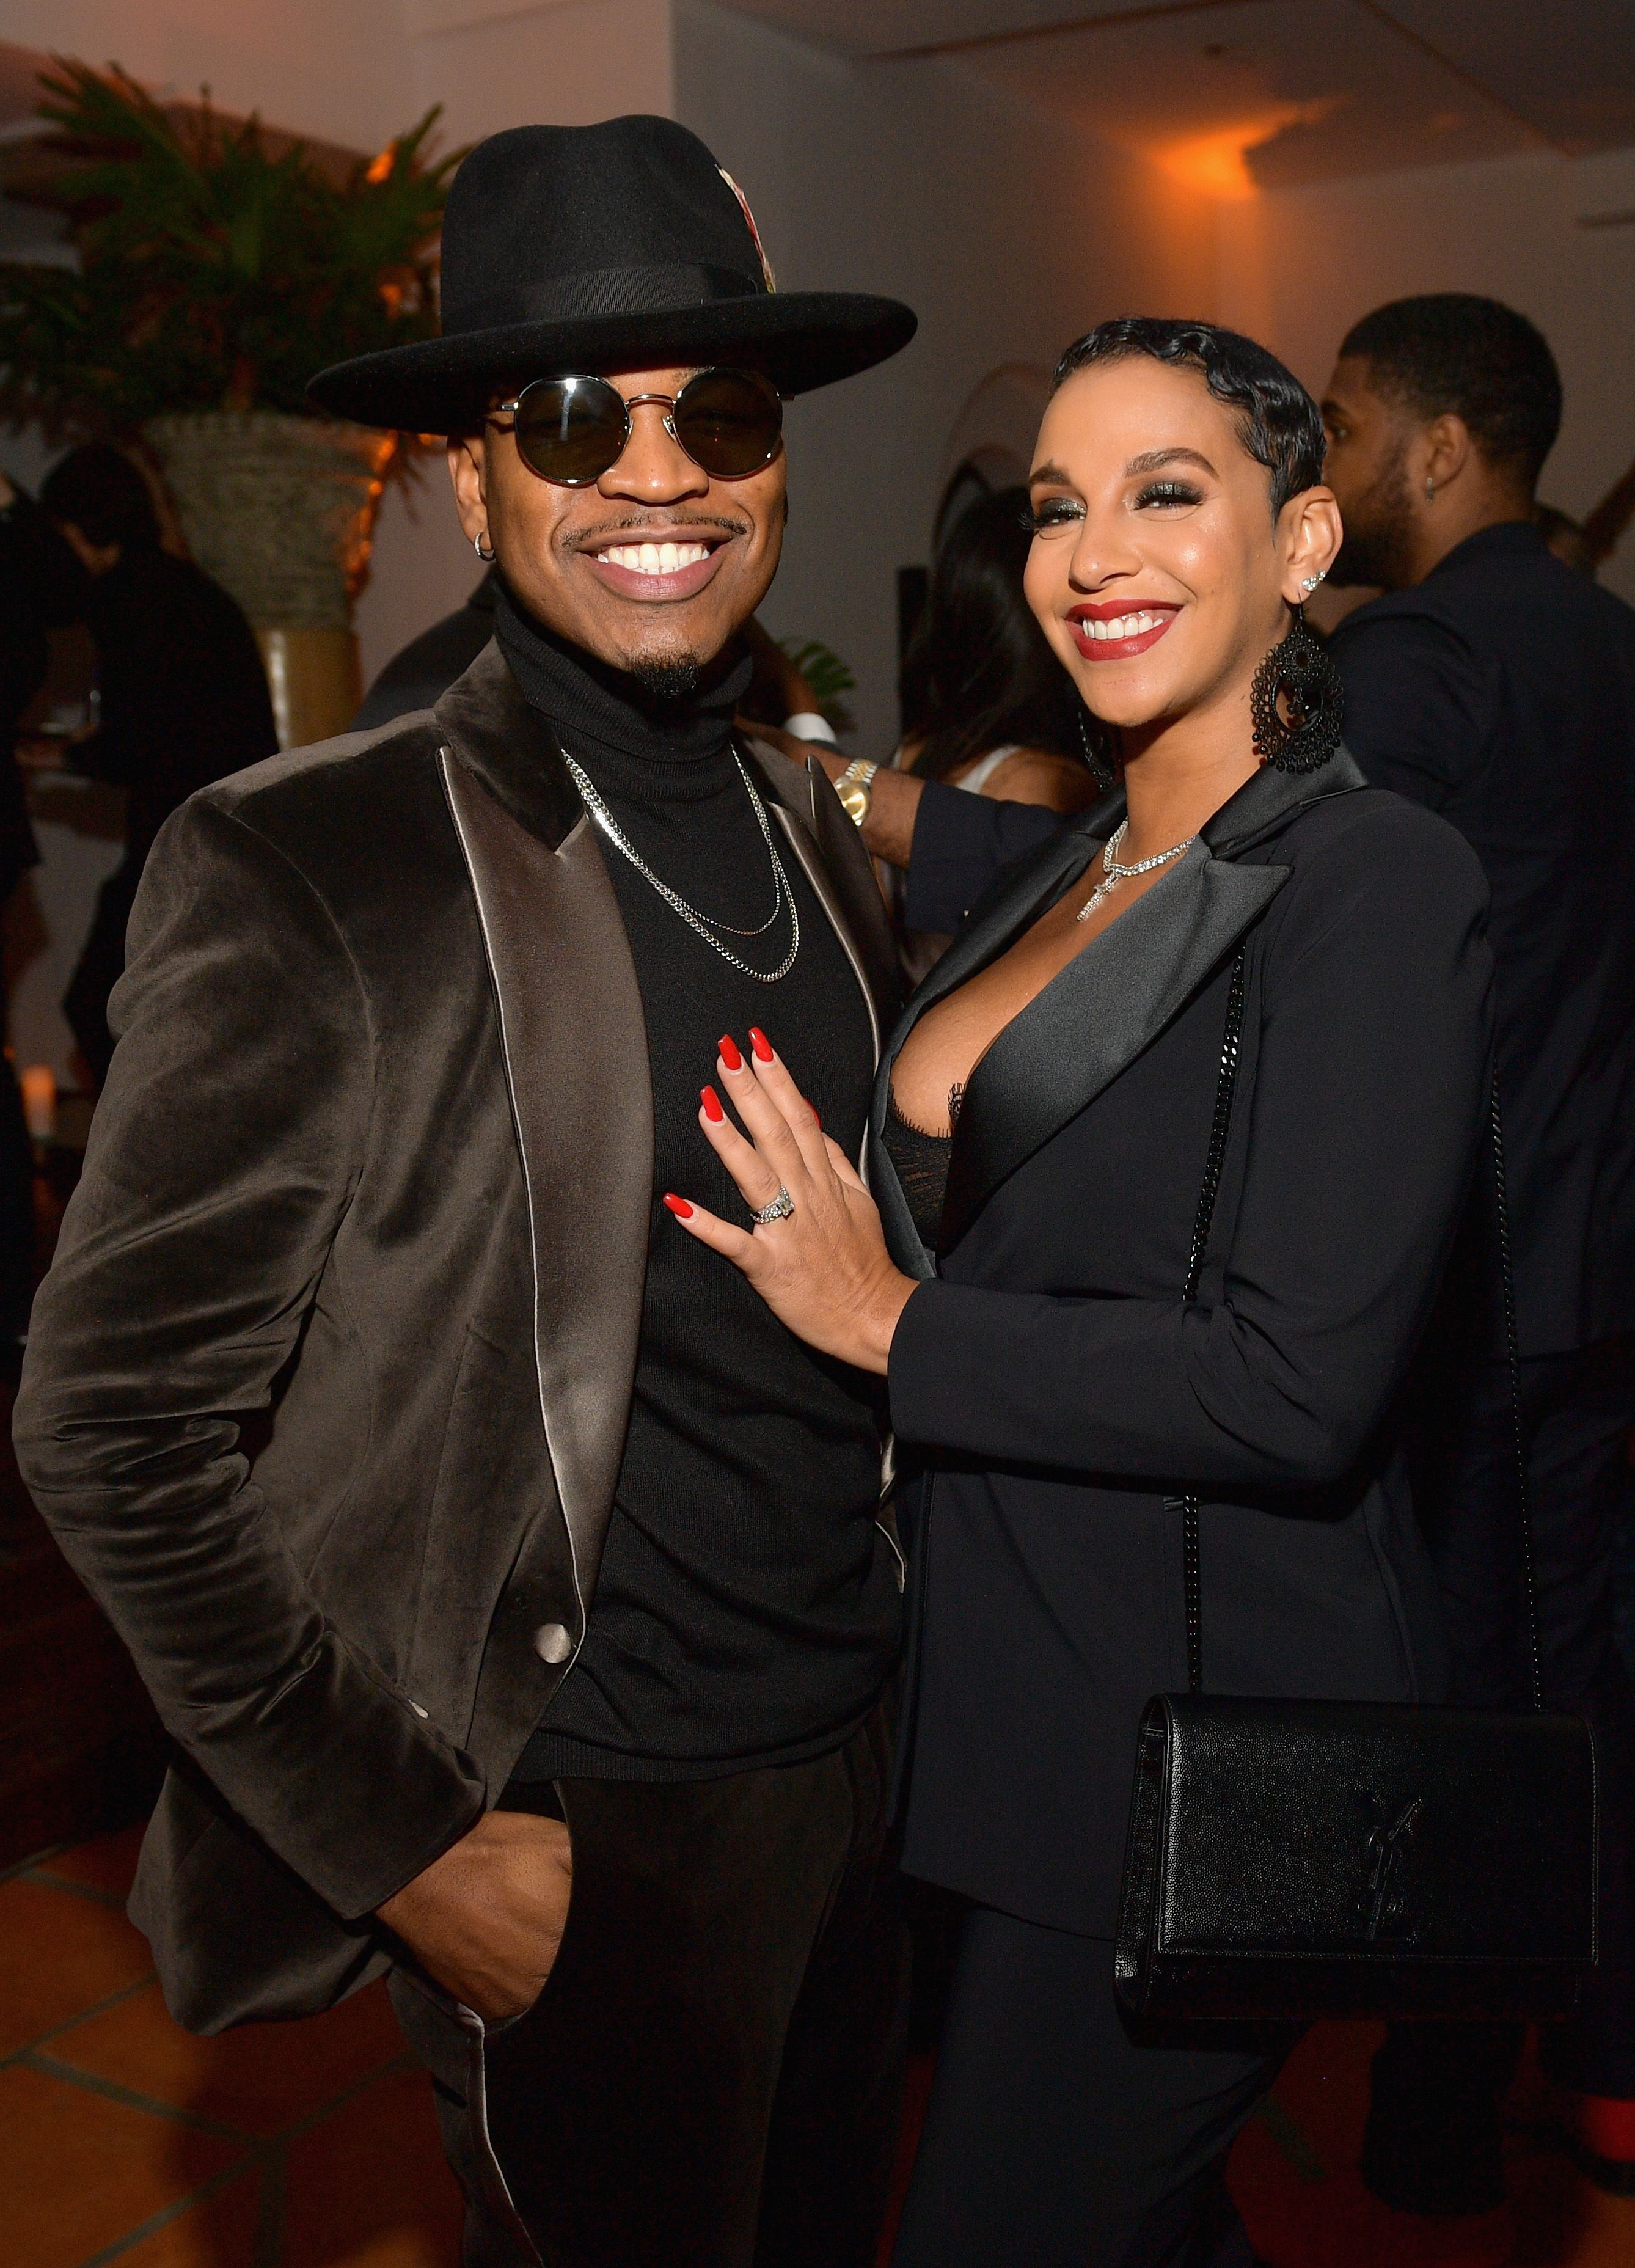 Ne-Yo and Crystal Smith at the 2018 GQ Men of the Year Party at a private residence on December 6, 2018 in Beverly Hills, California | Photo: Getty Images